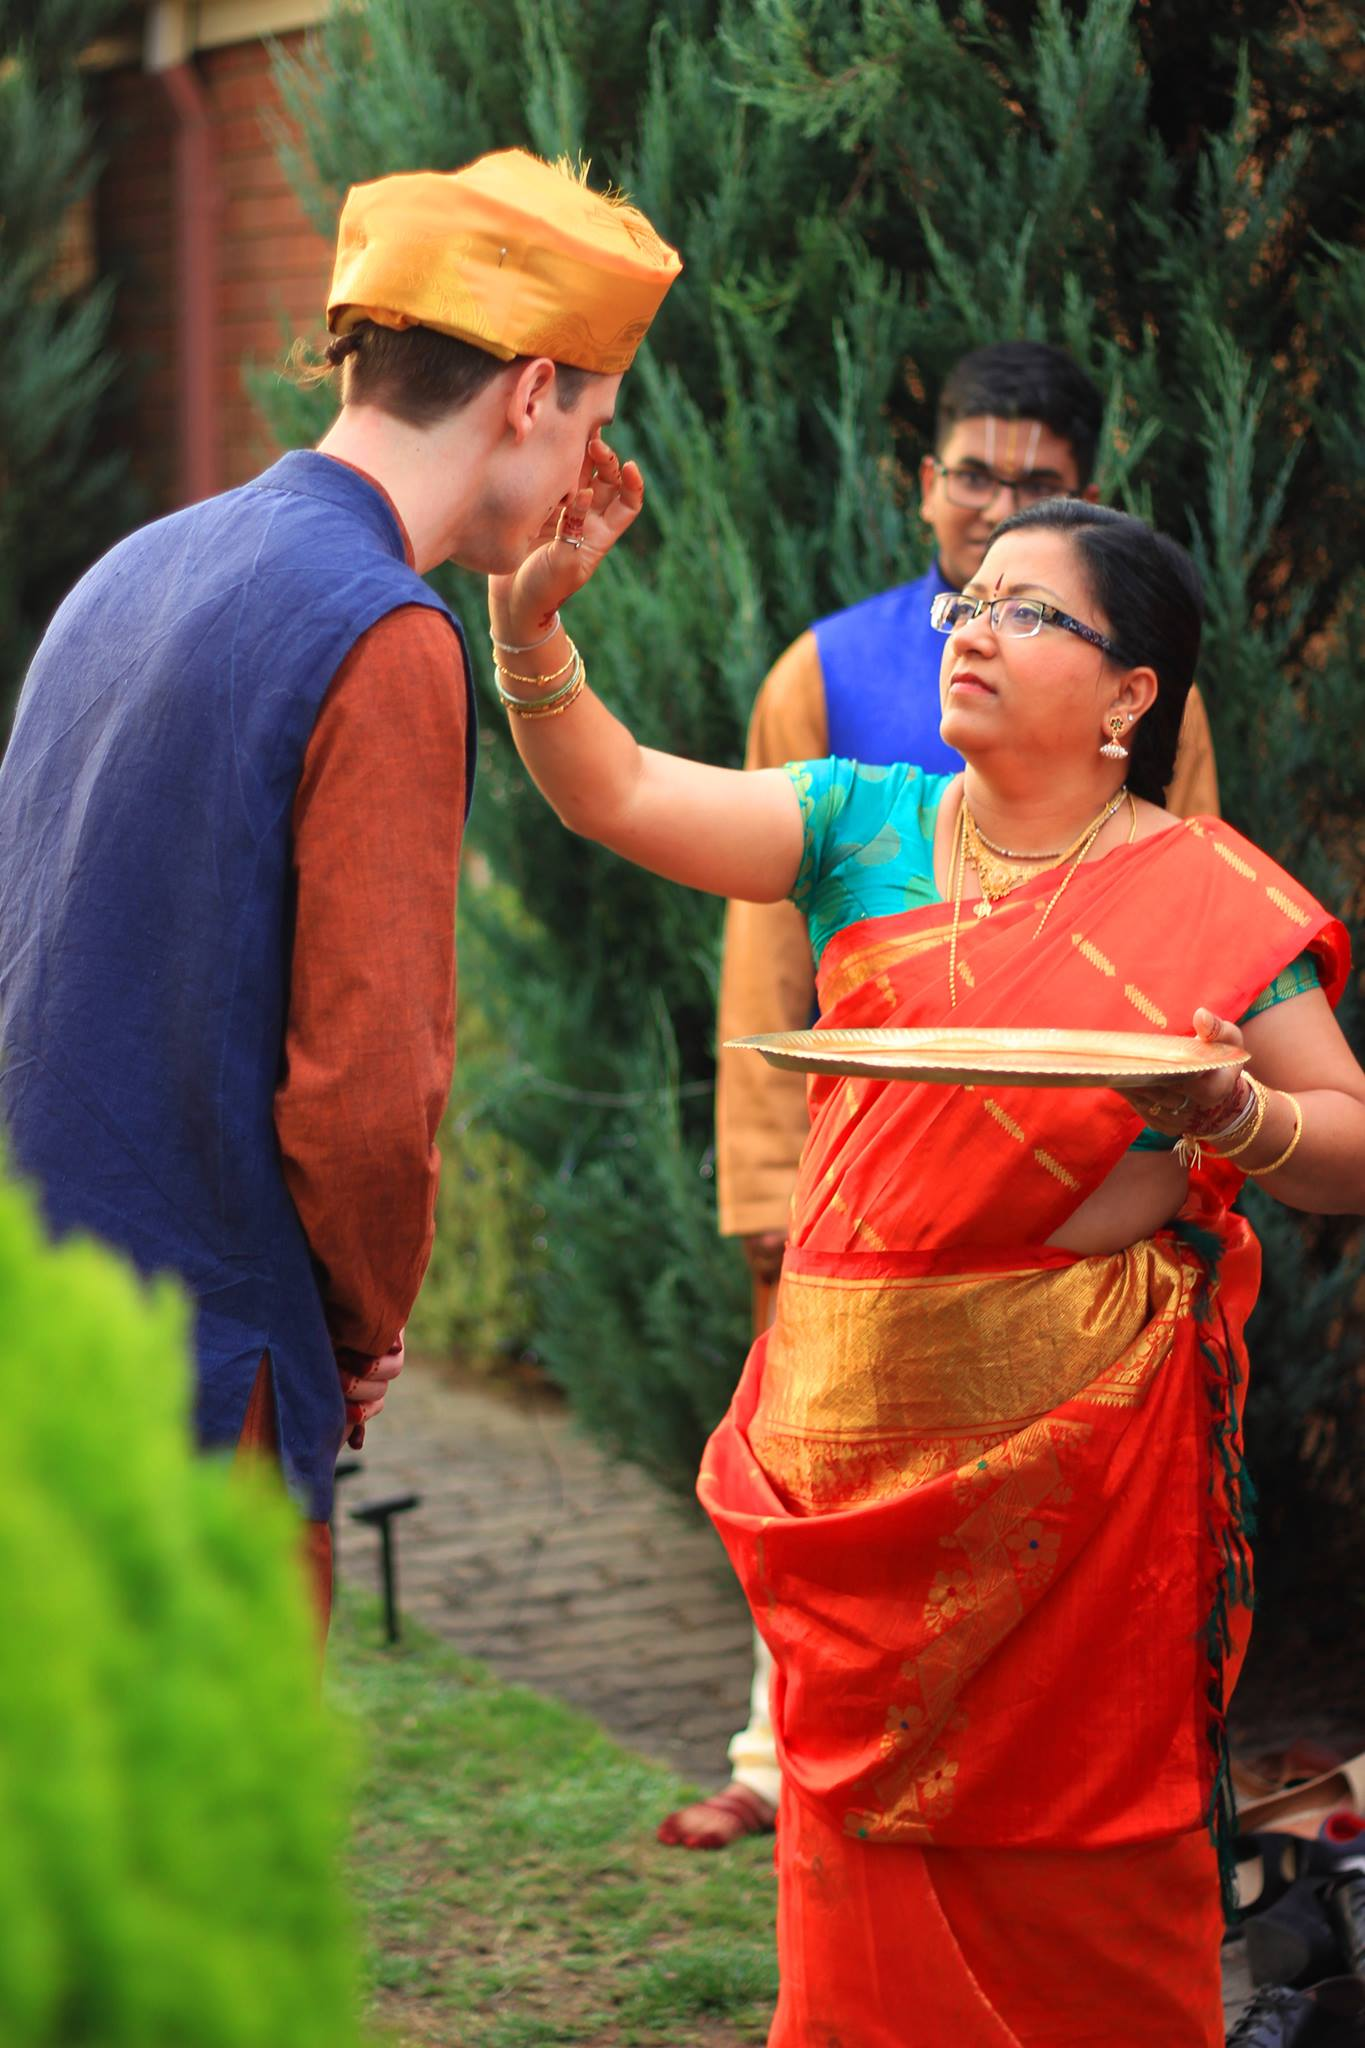 Salaphaty's mom waved a 'drishti arathi' to remove evil eye and invited the party in